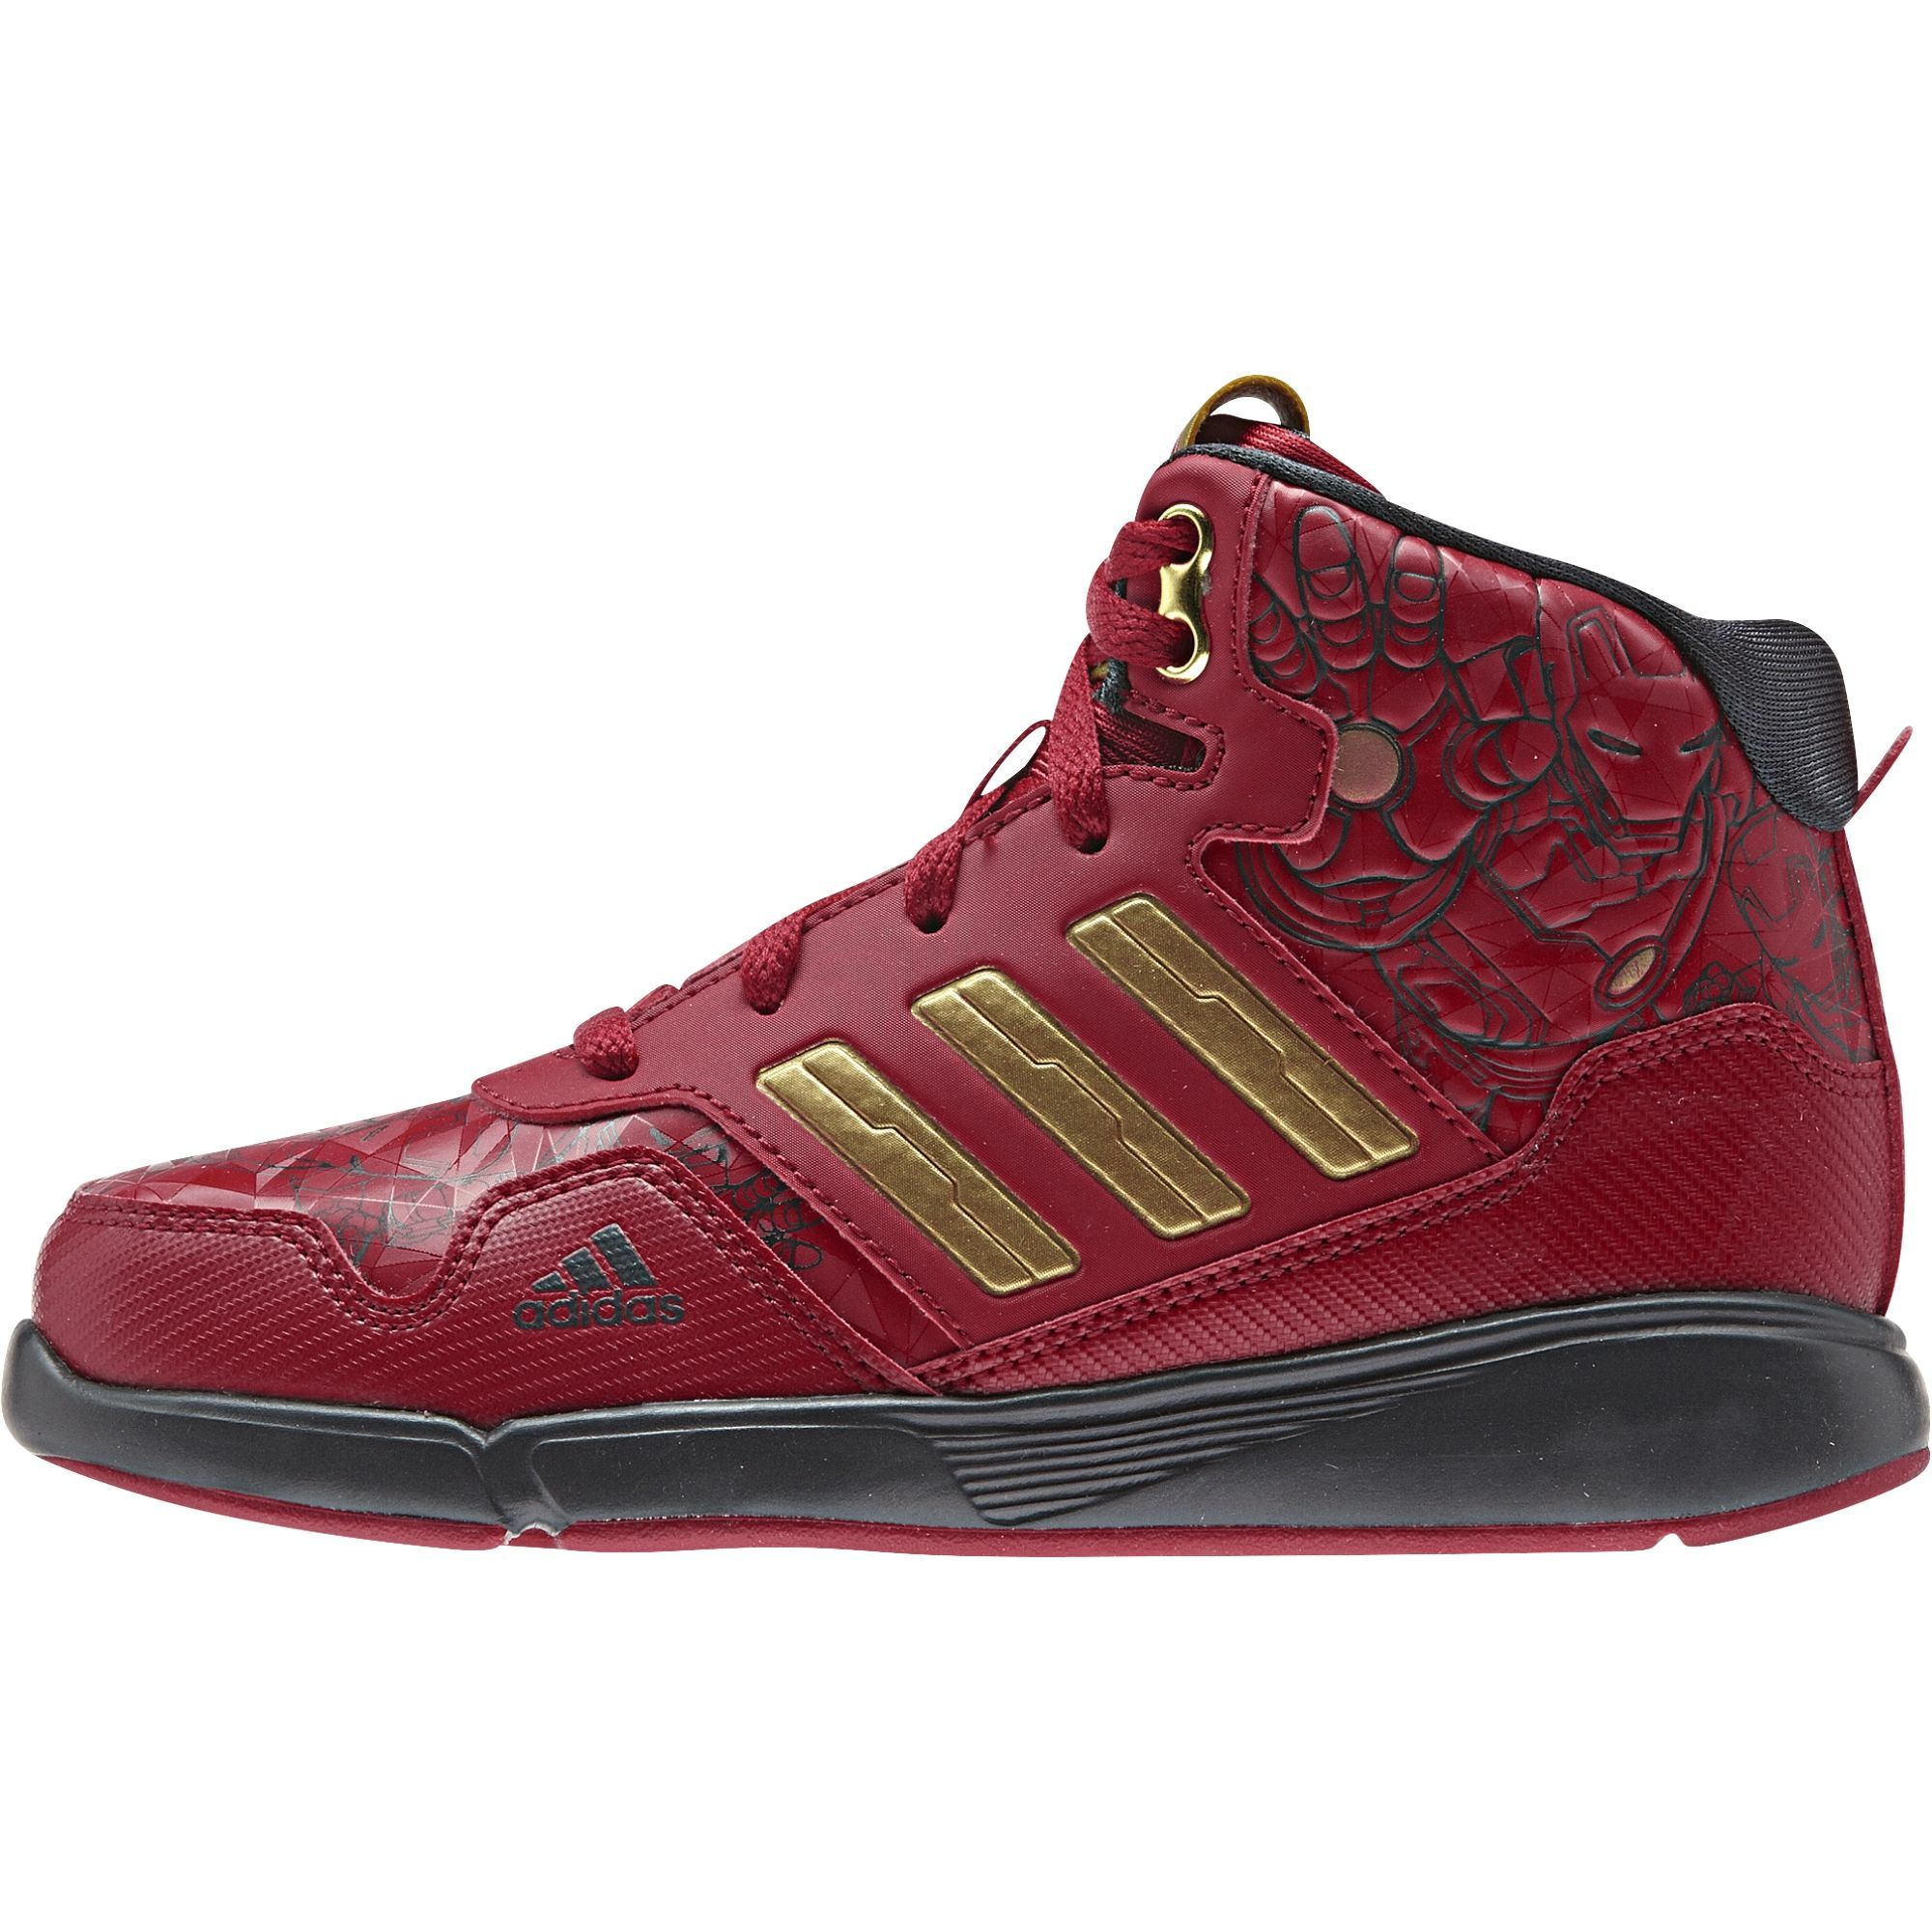 adidas - Marvel Avengers Mid Shoes